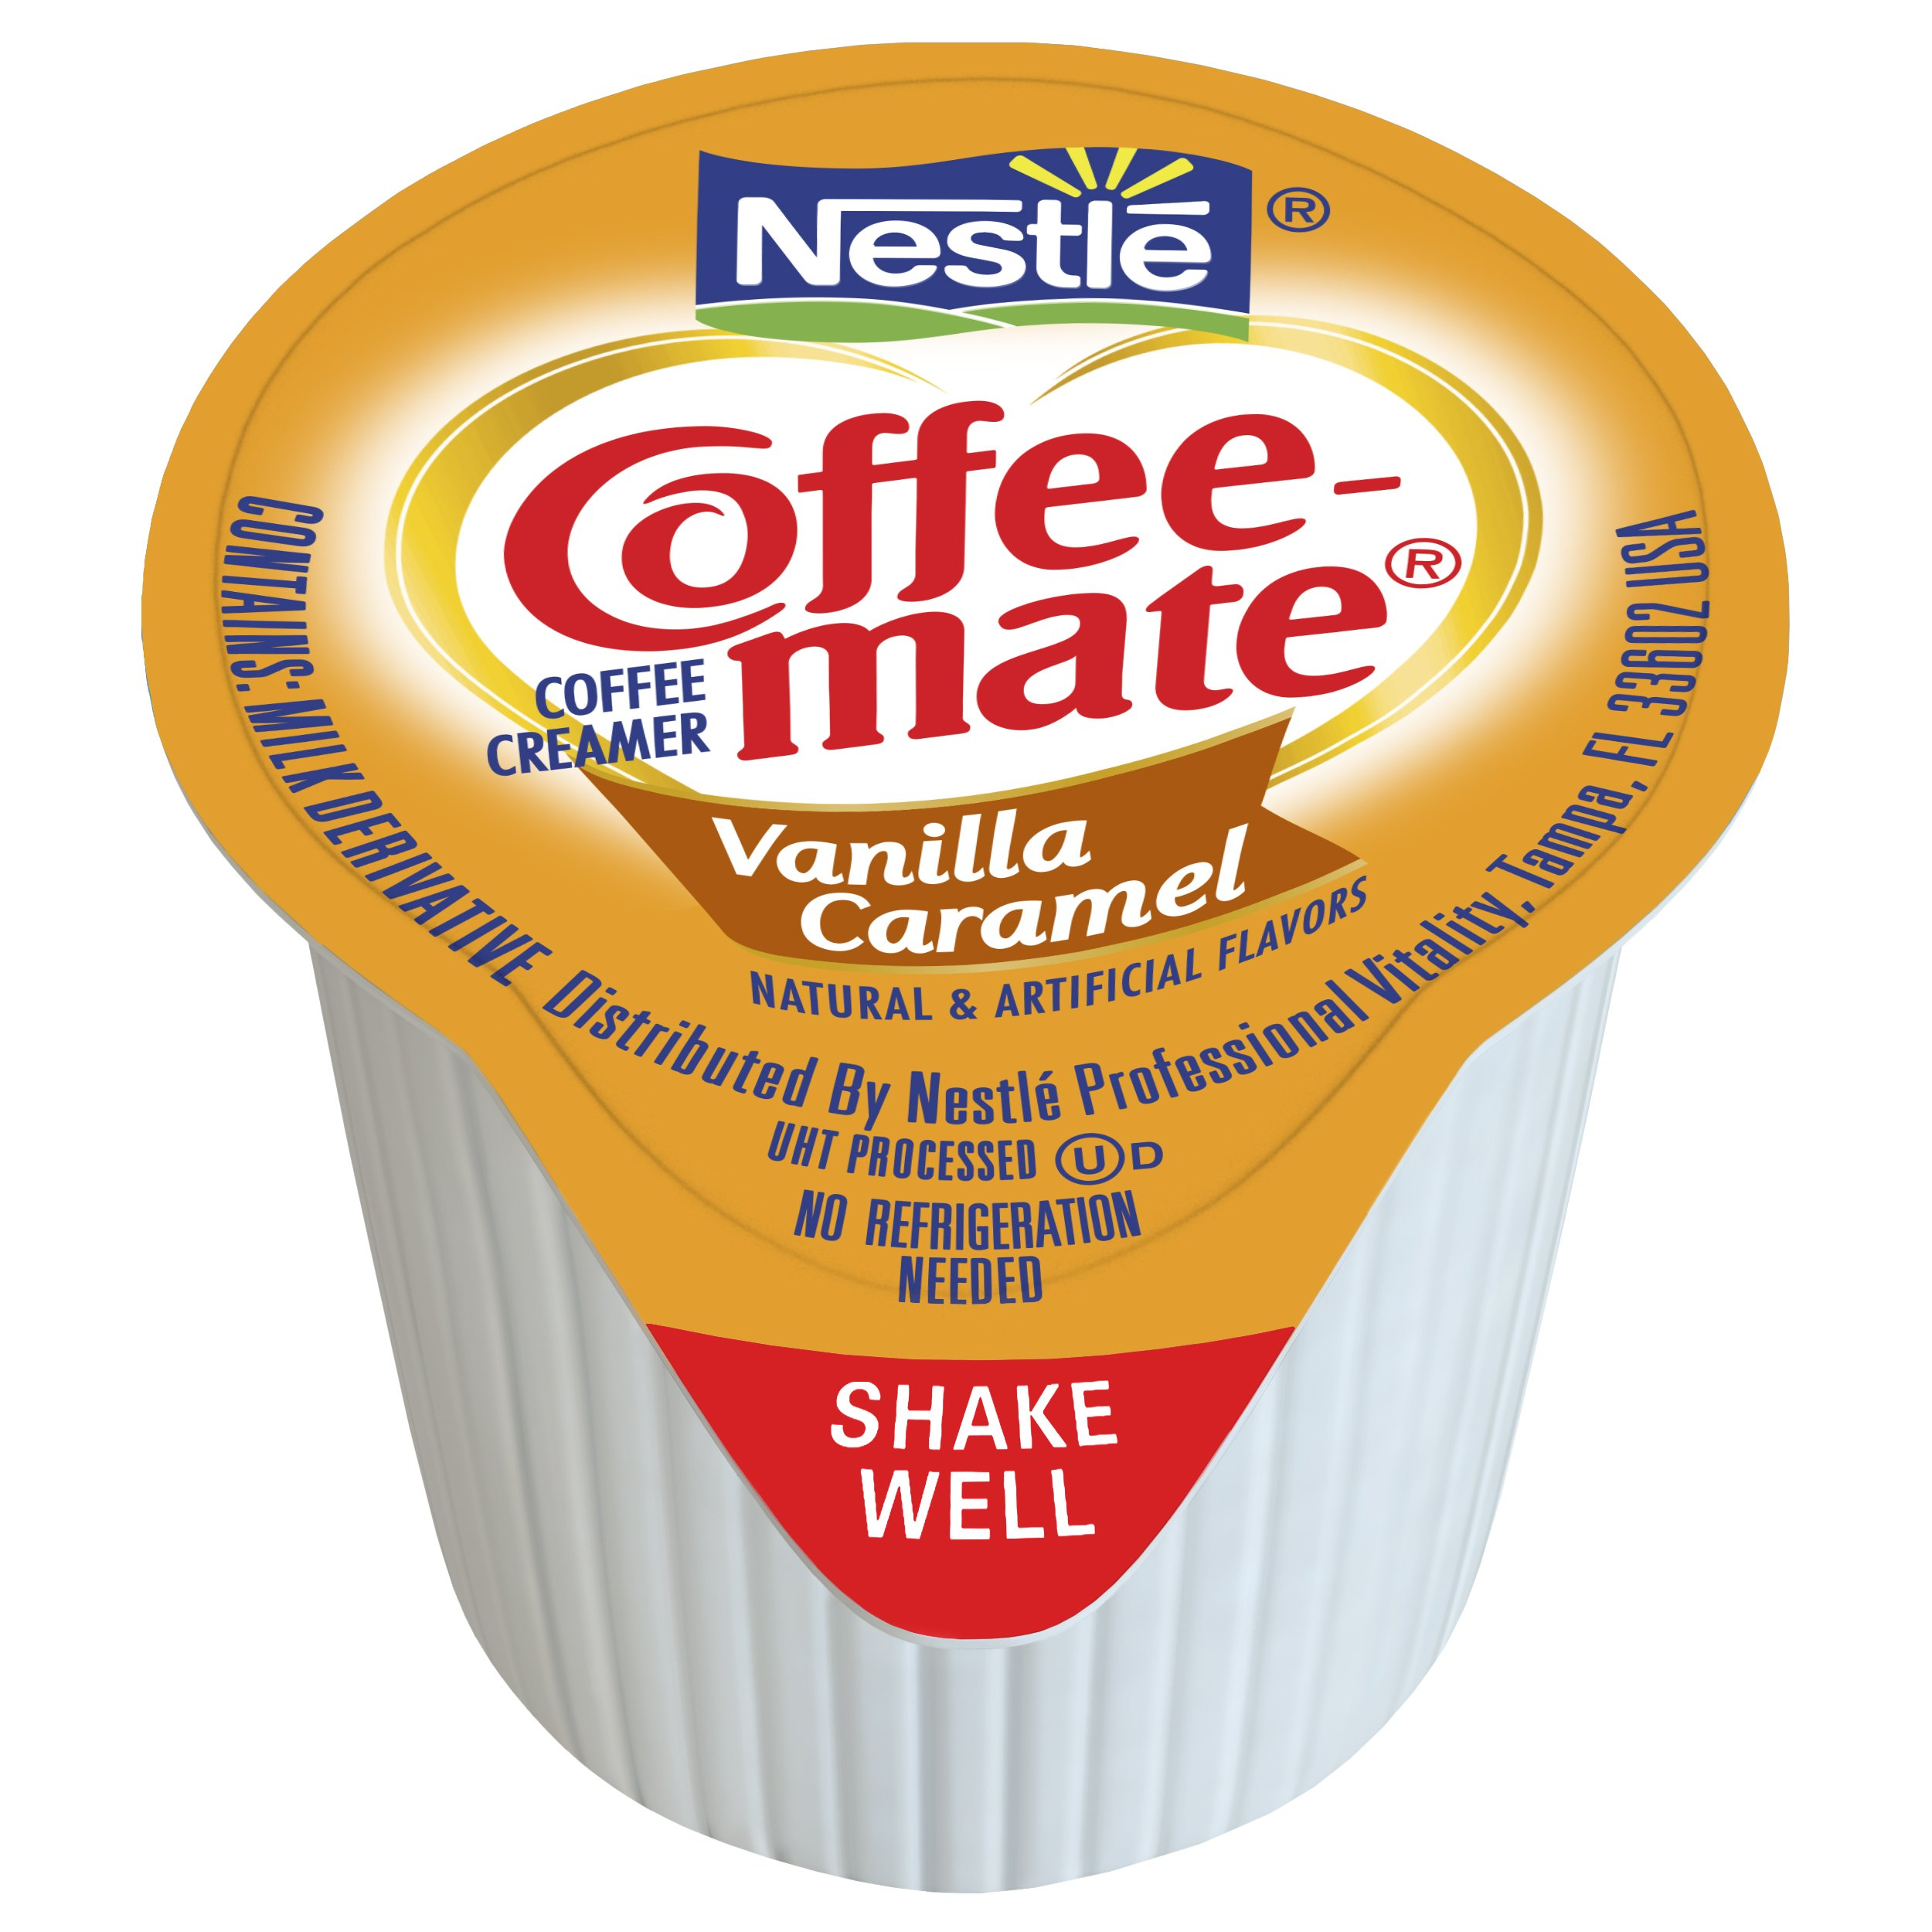 NESTLE COFFEE-MATE Coffee Creamer, Vanilla Caramel, liquid creamer singles, 180 Count (Pack of 1) by Nestle Coffee Mate (Image #2)